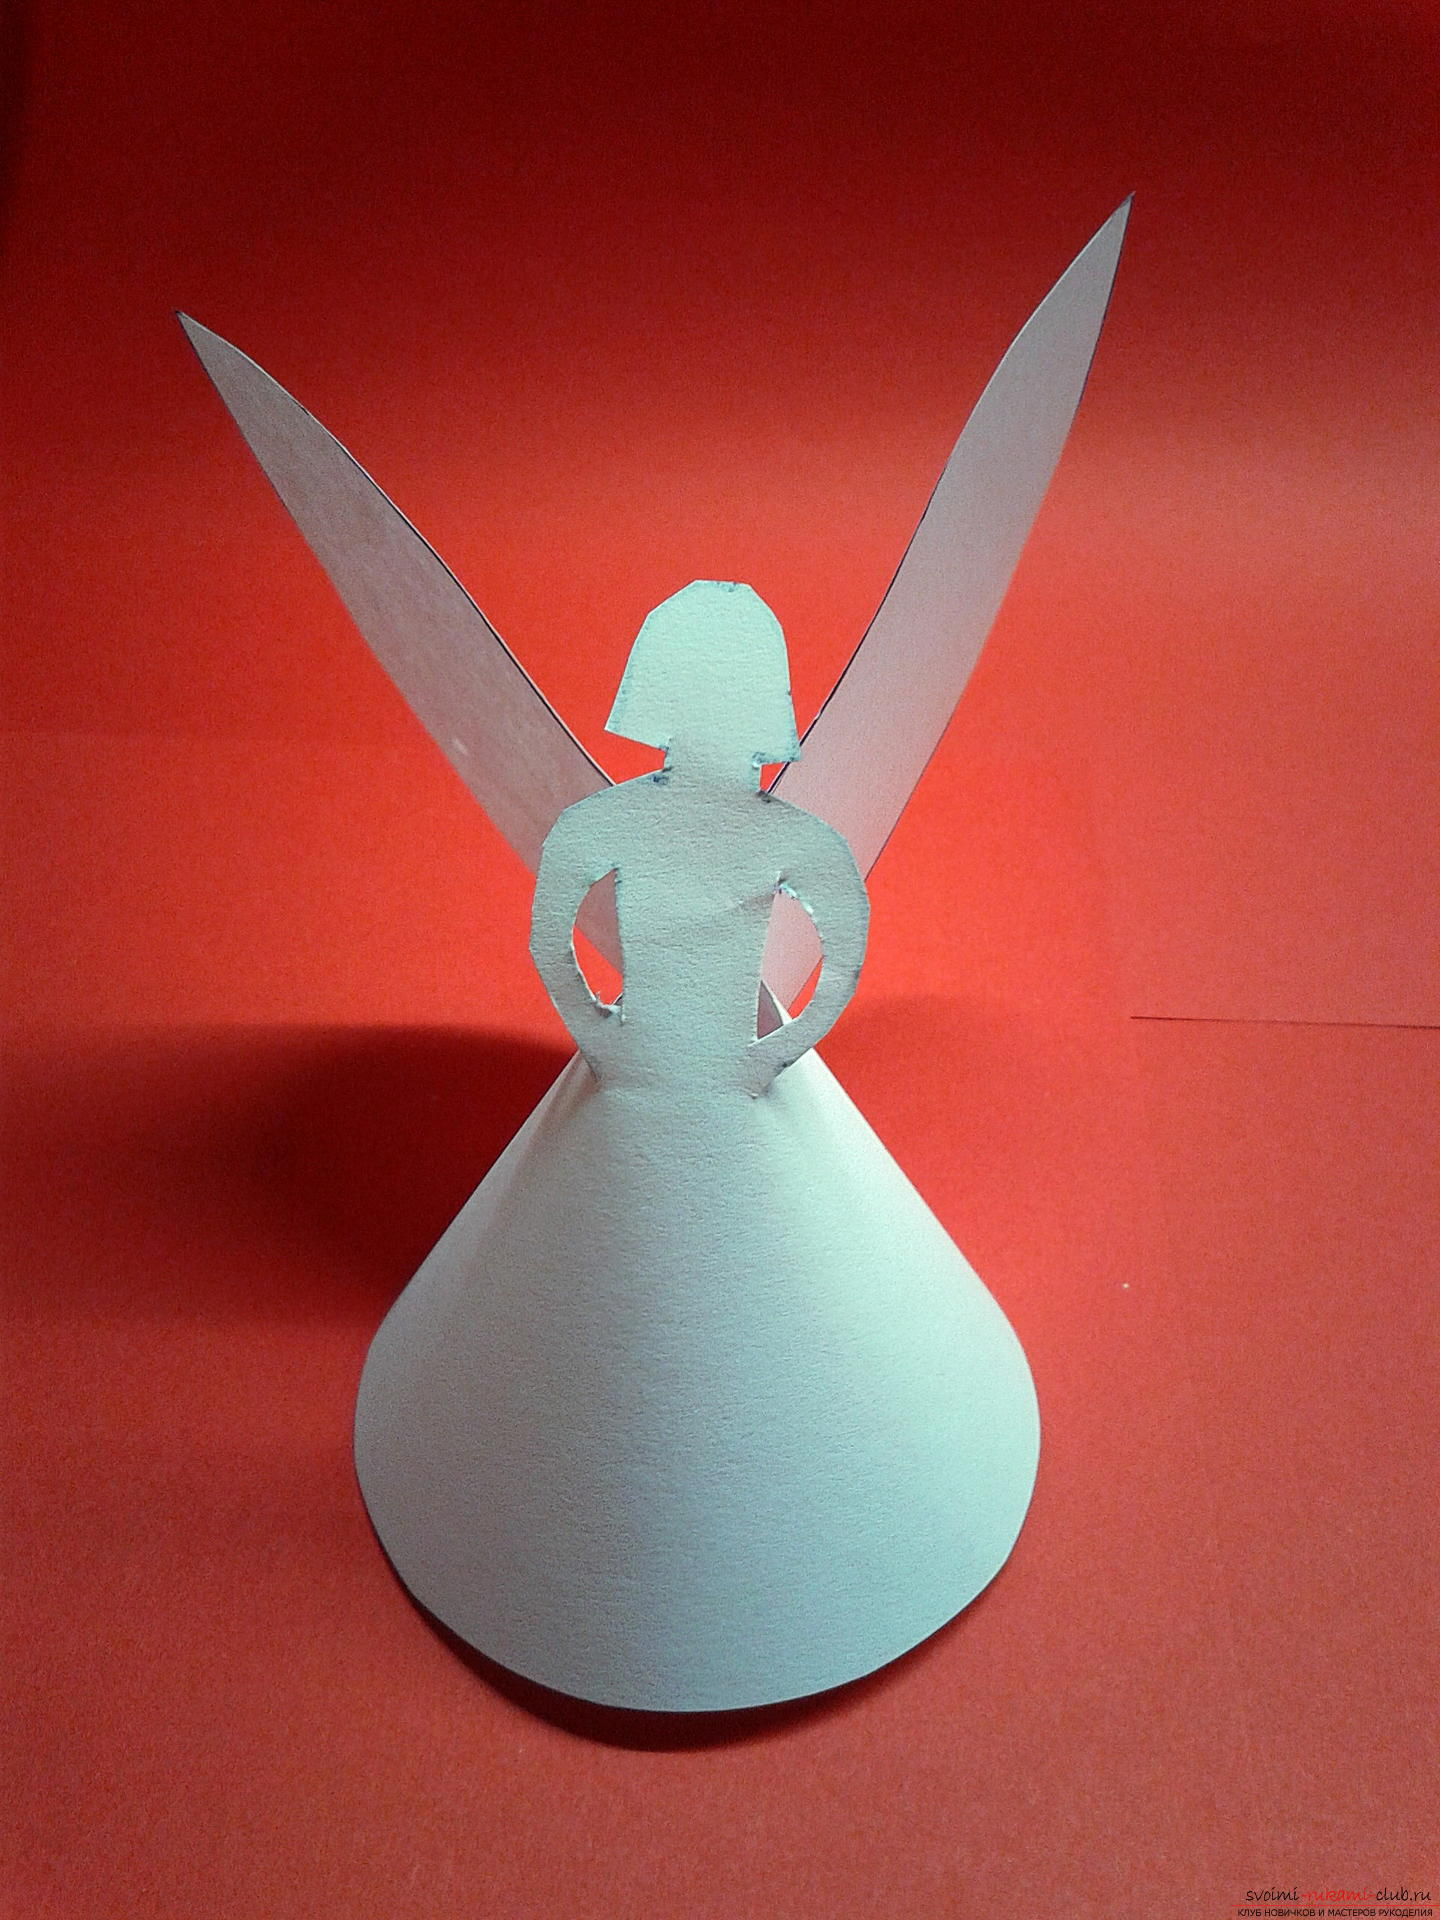 This master class describes the process of creating New Year's handicrafts. Cute angels made of paper were created as decorations on a Christmas tree .. Photo # 10